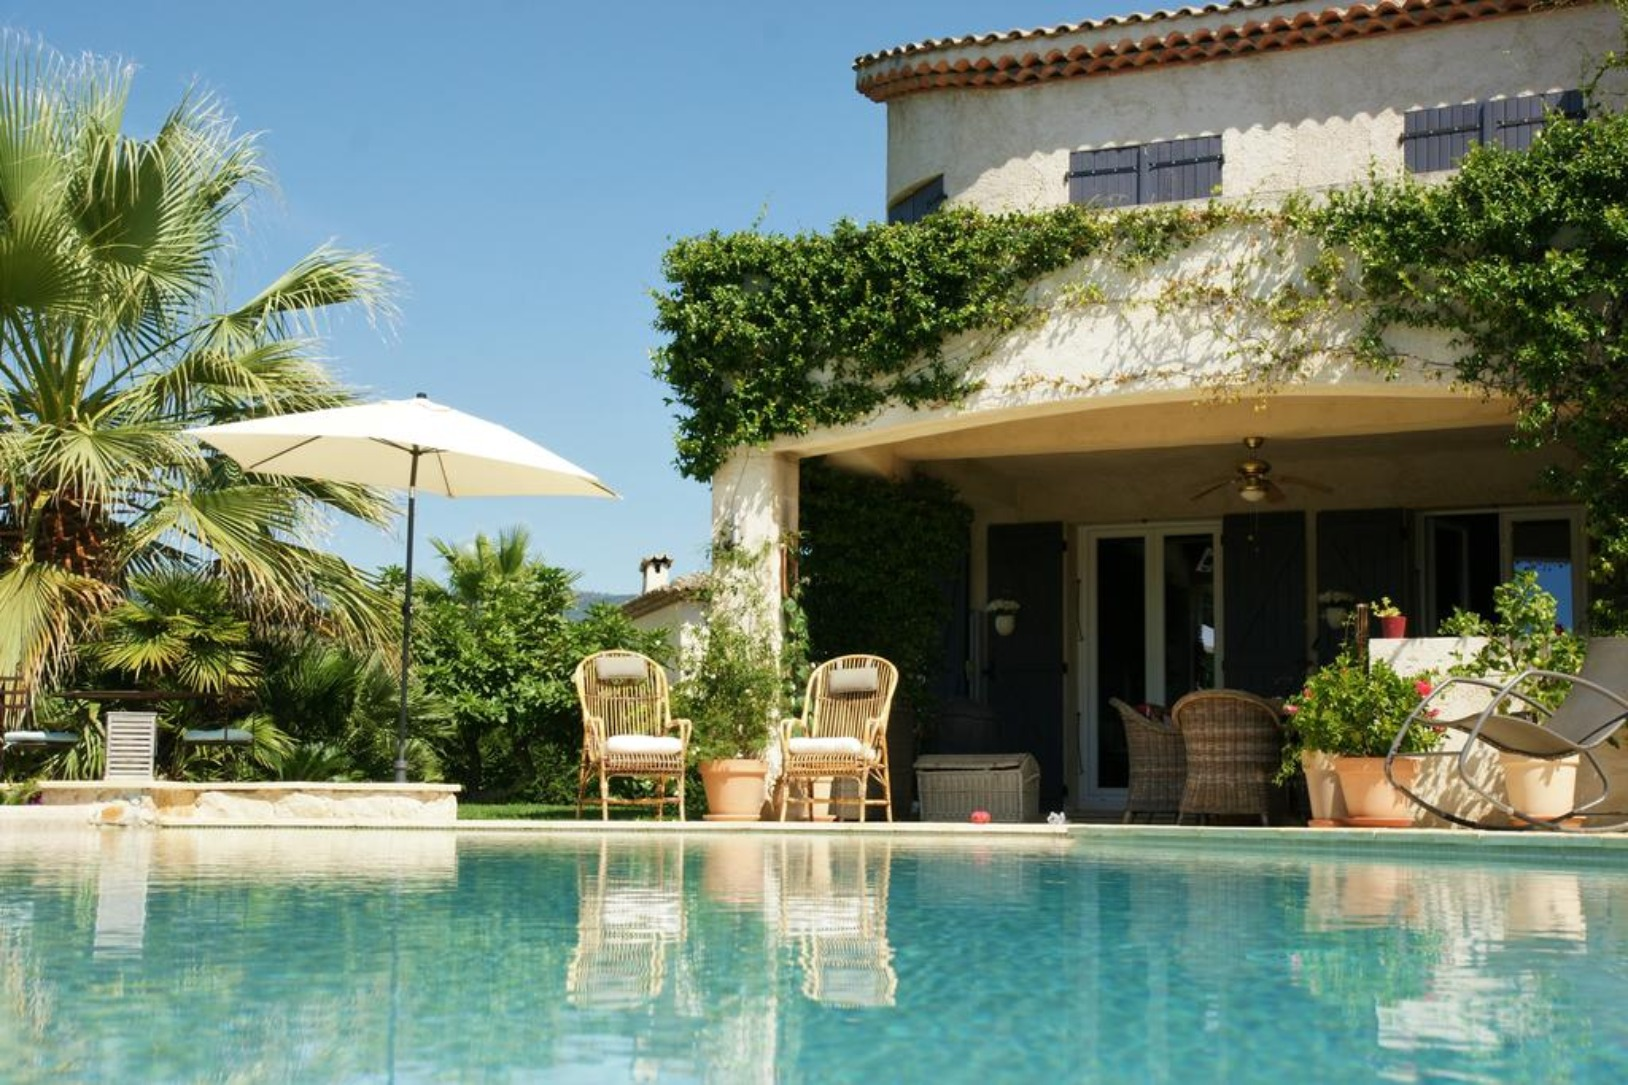 A pool next to a palm tree at Chambre d'hôtes d'Isabelle.